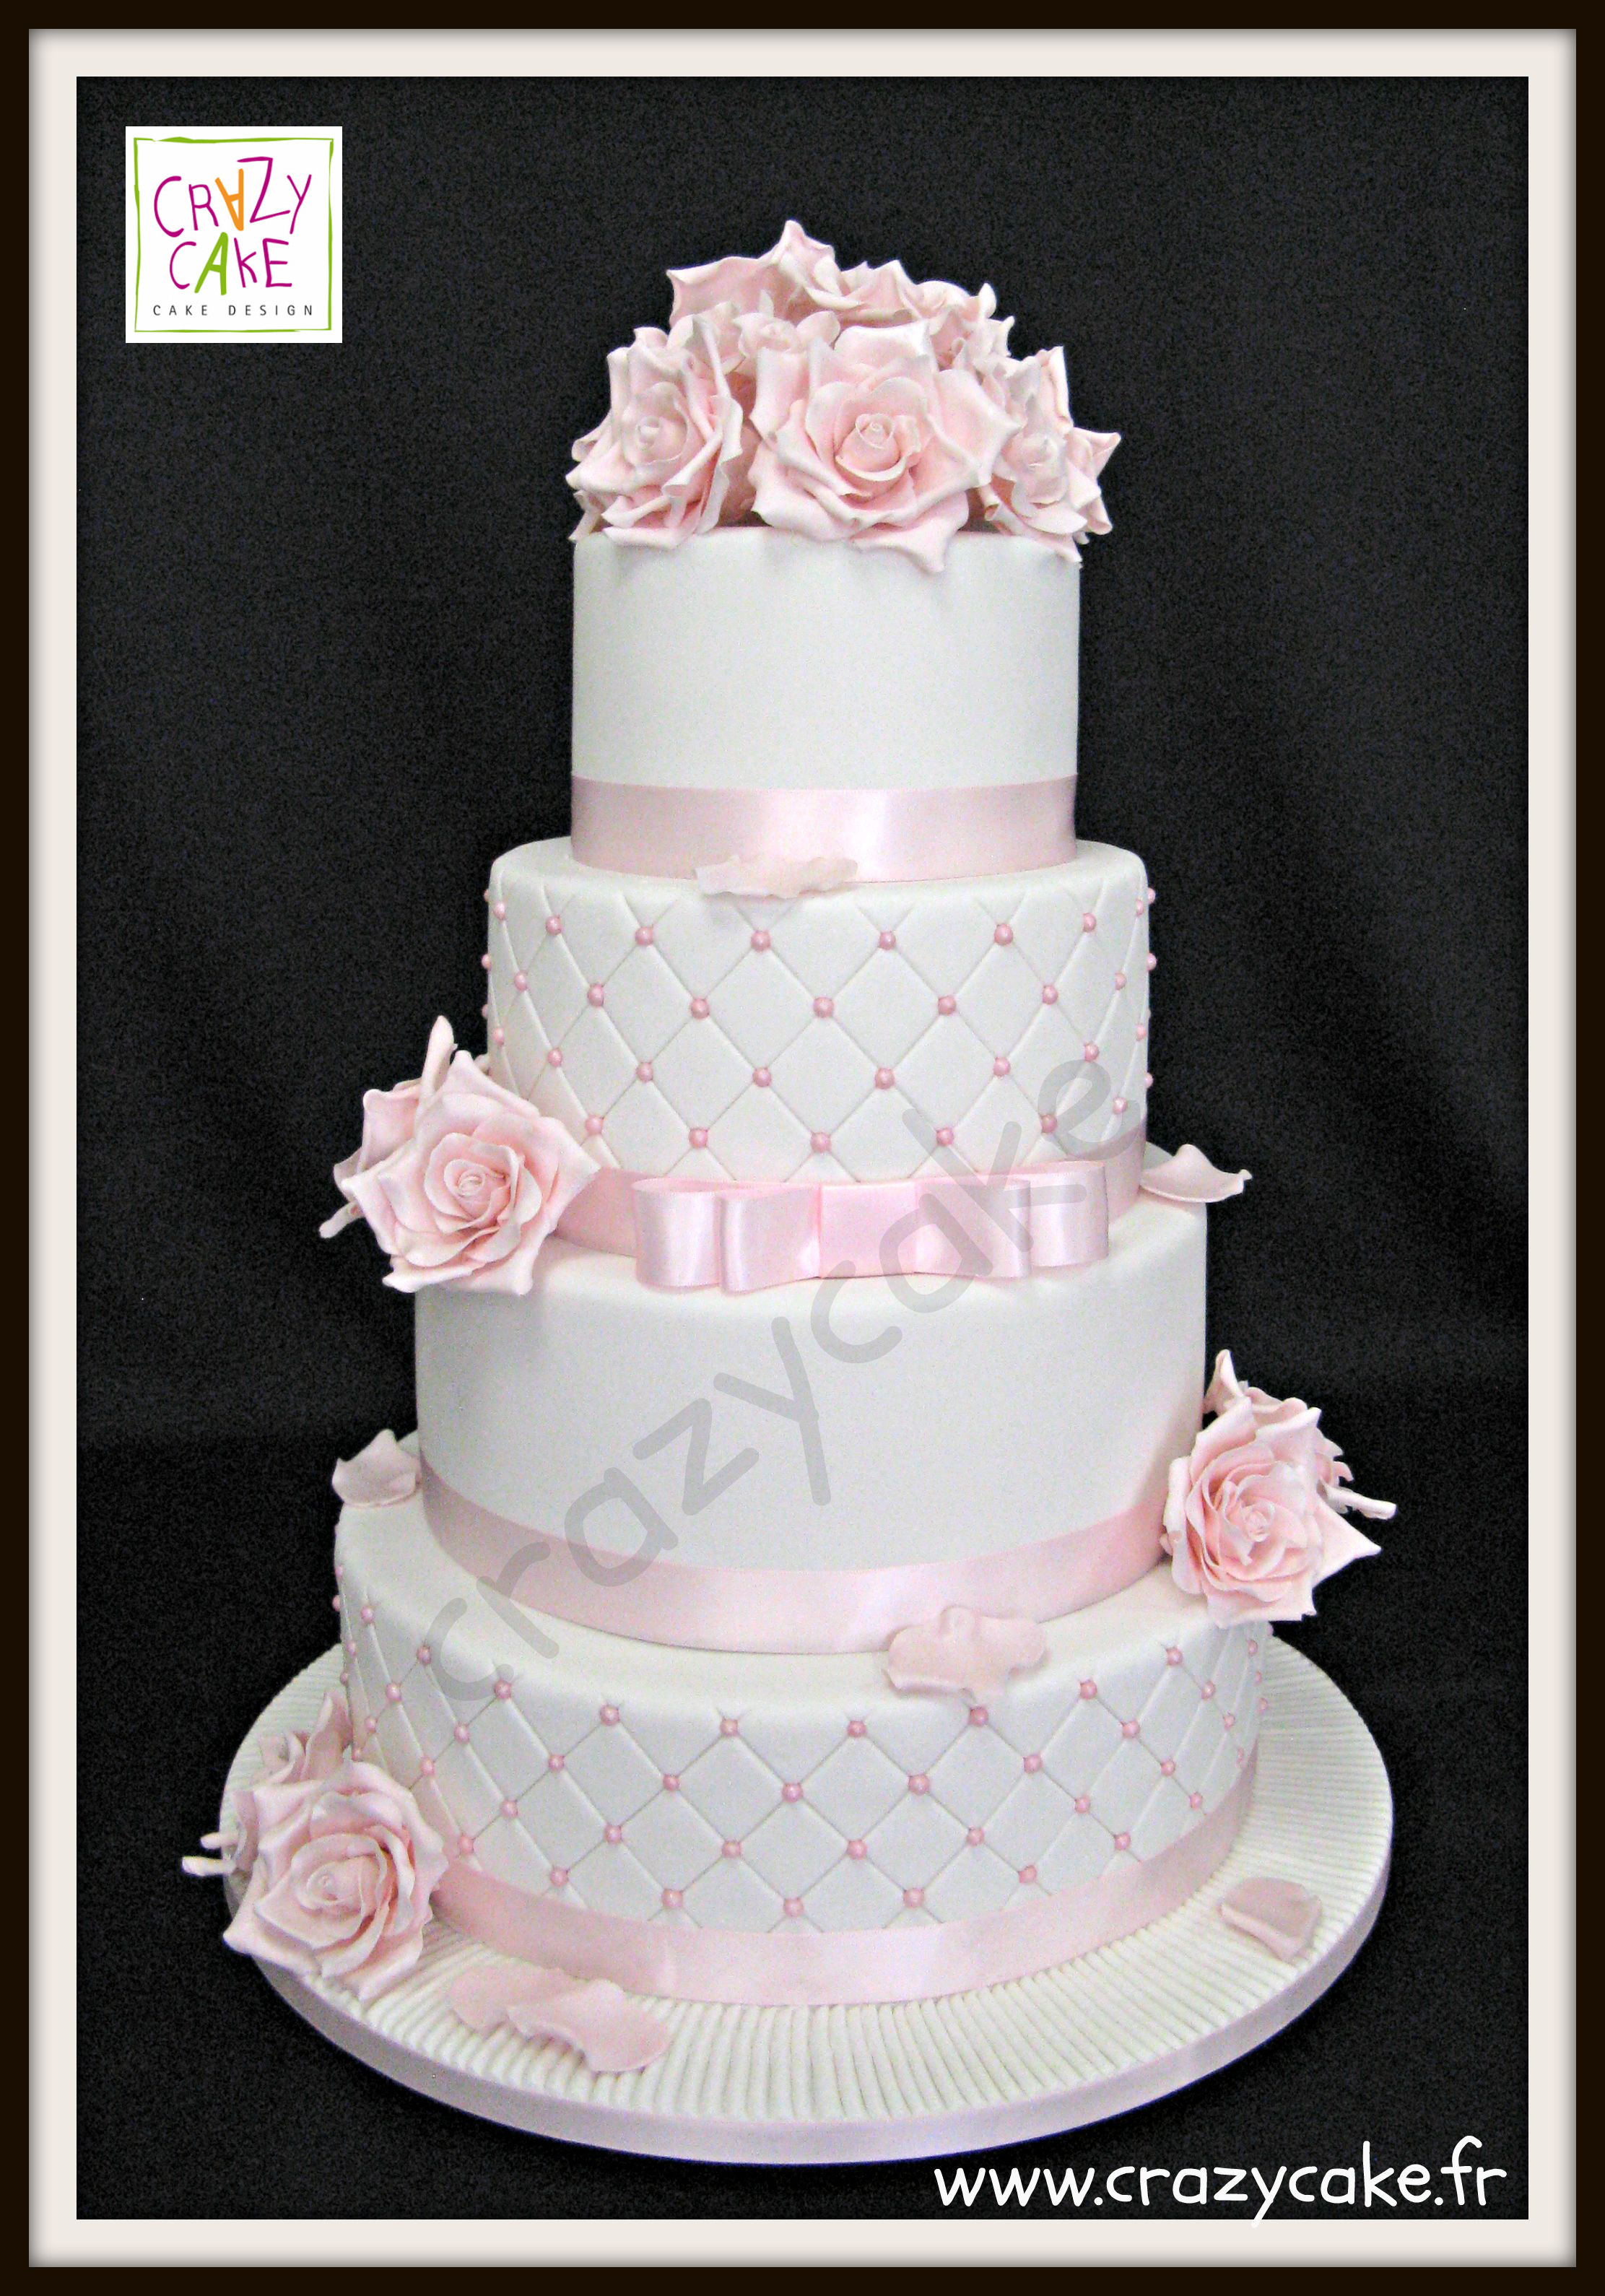 crazy wedding cake cake traiteurs et wedding cake moselle 57 13041